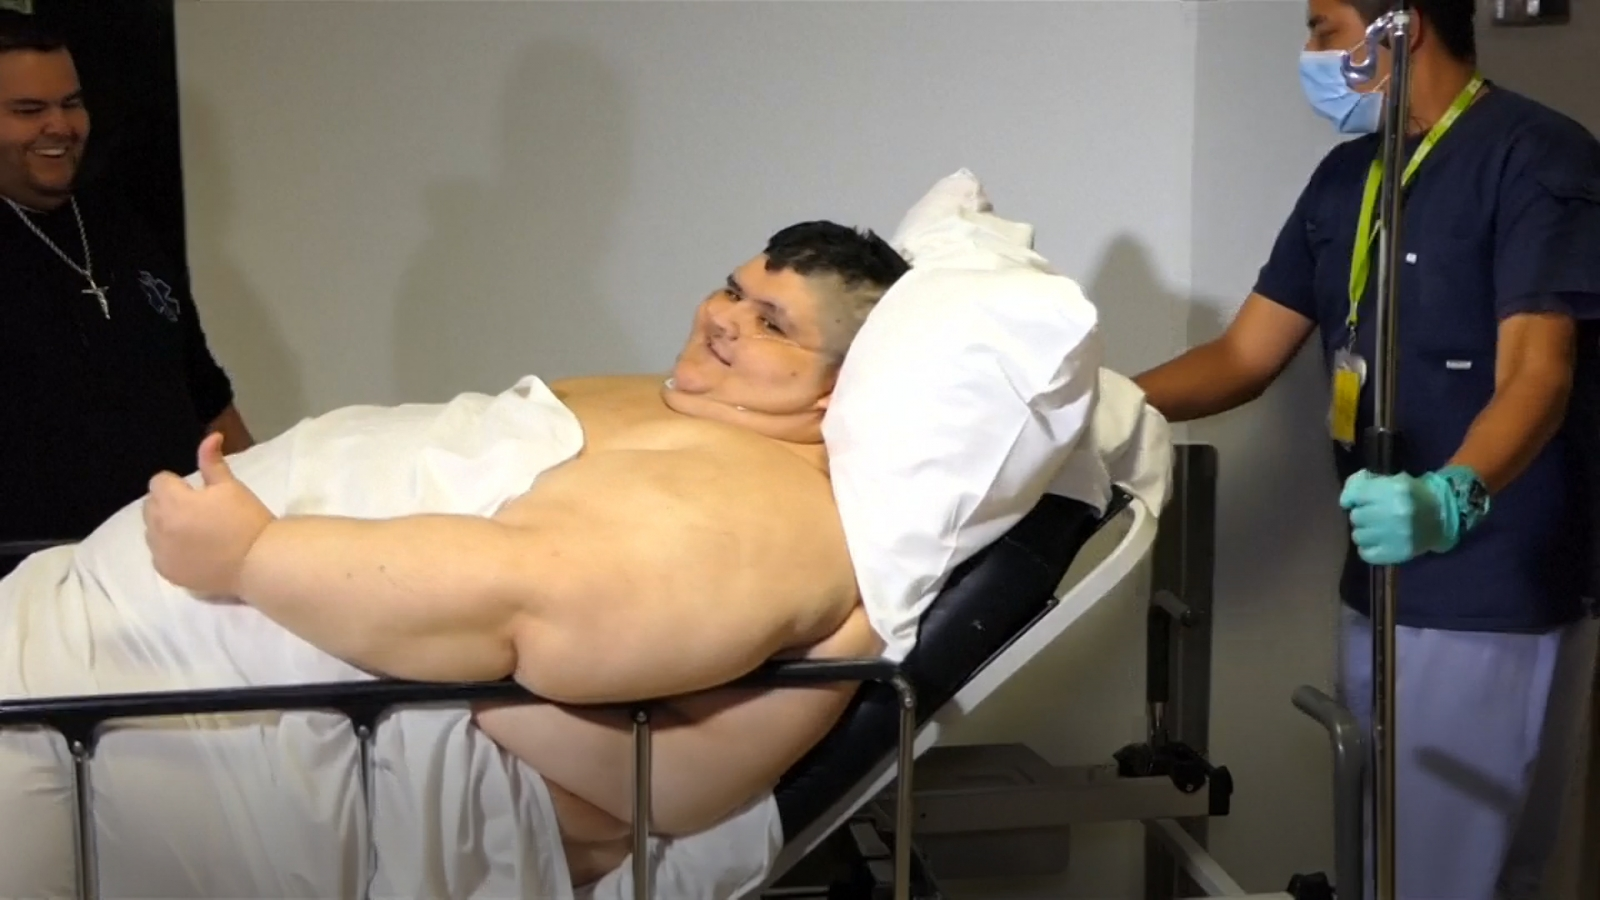 worlds-fattest-man-has-surgery-to-halve-his-weight